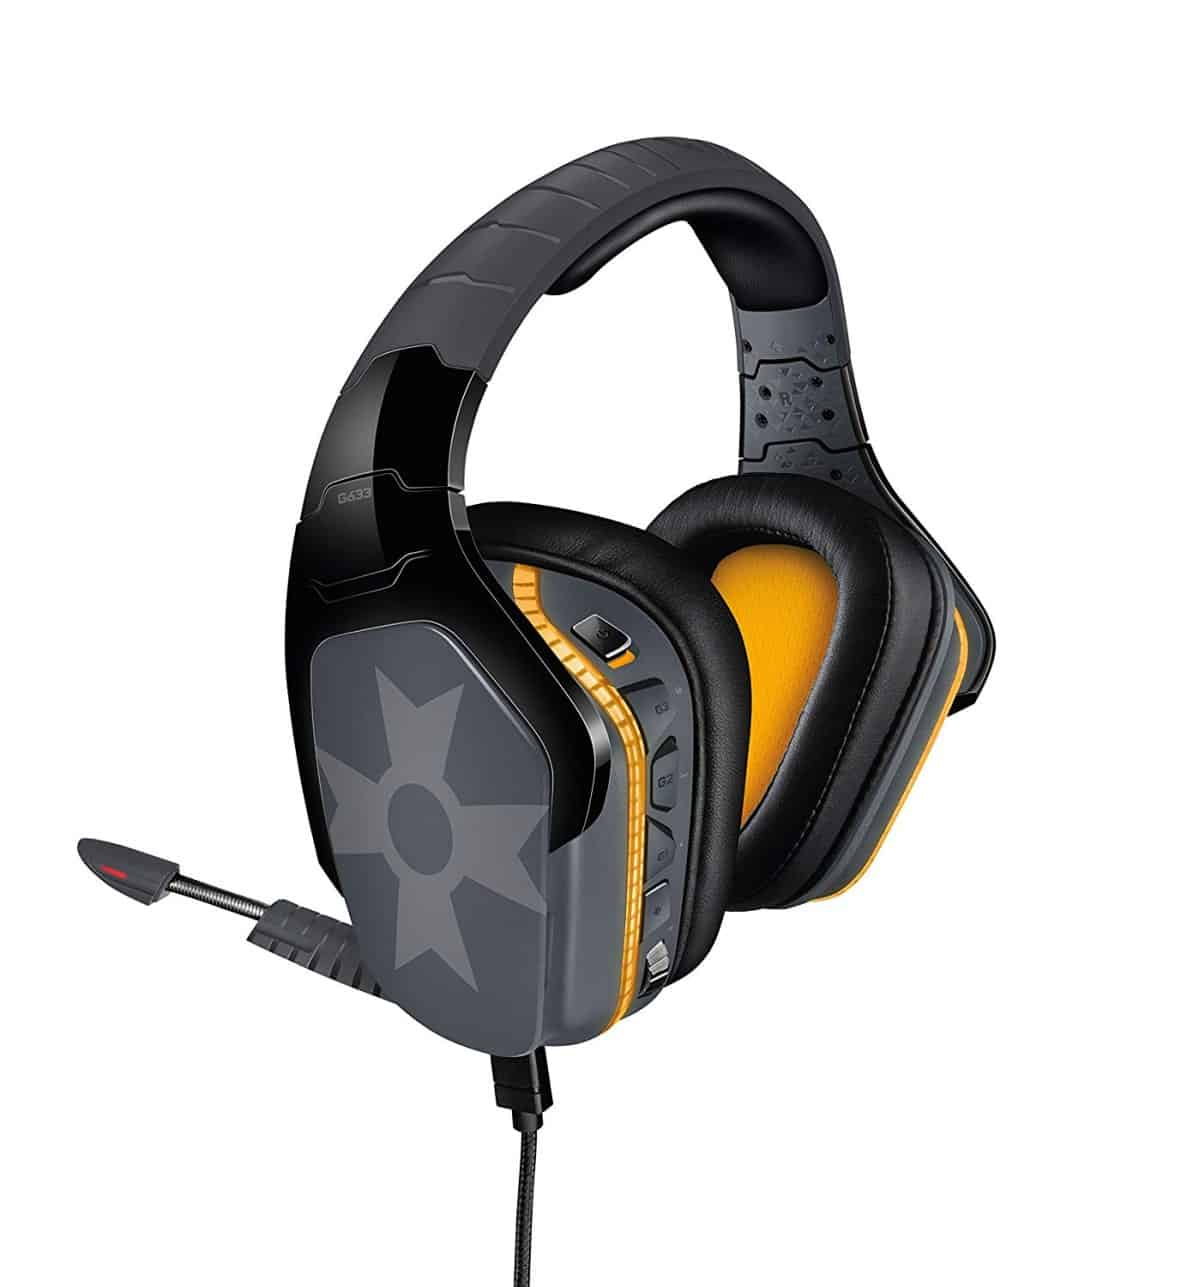 Logitech G633 Artemis Spectrum | Best Gaming Headset On Amazon